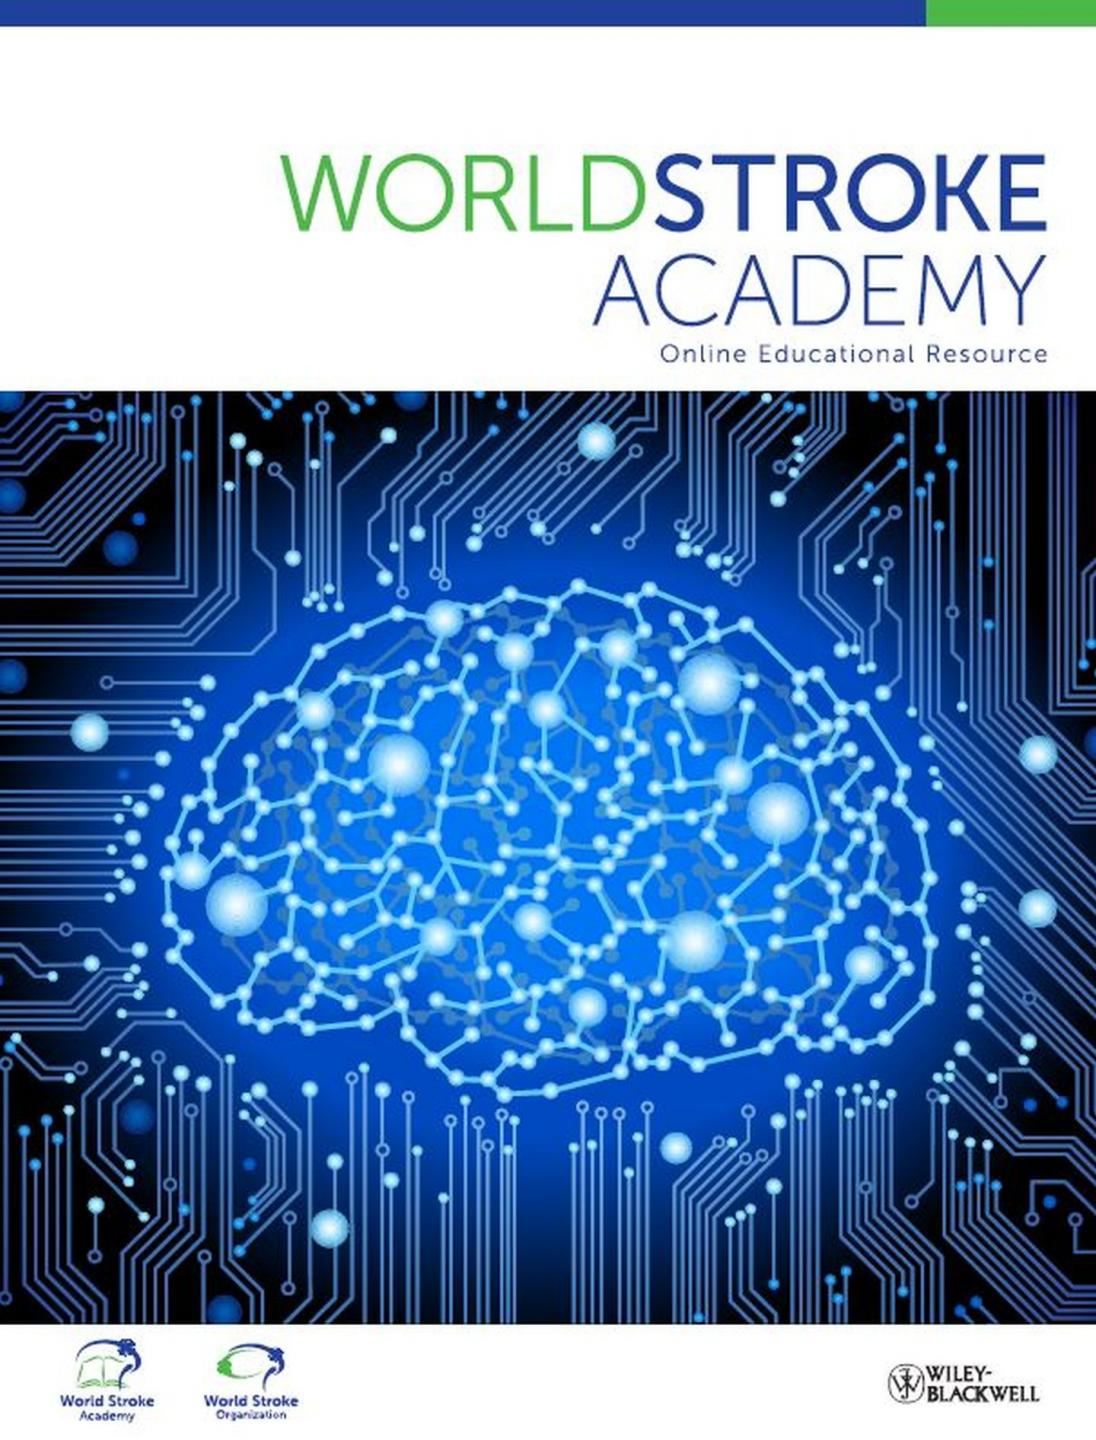 World Stroke Academy, Control of Hypertension for Prevention of Stroke